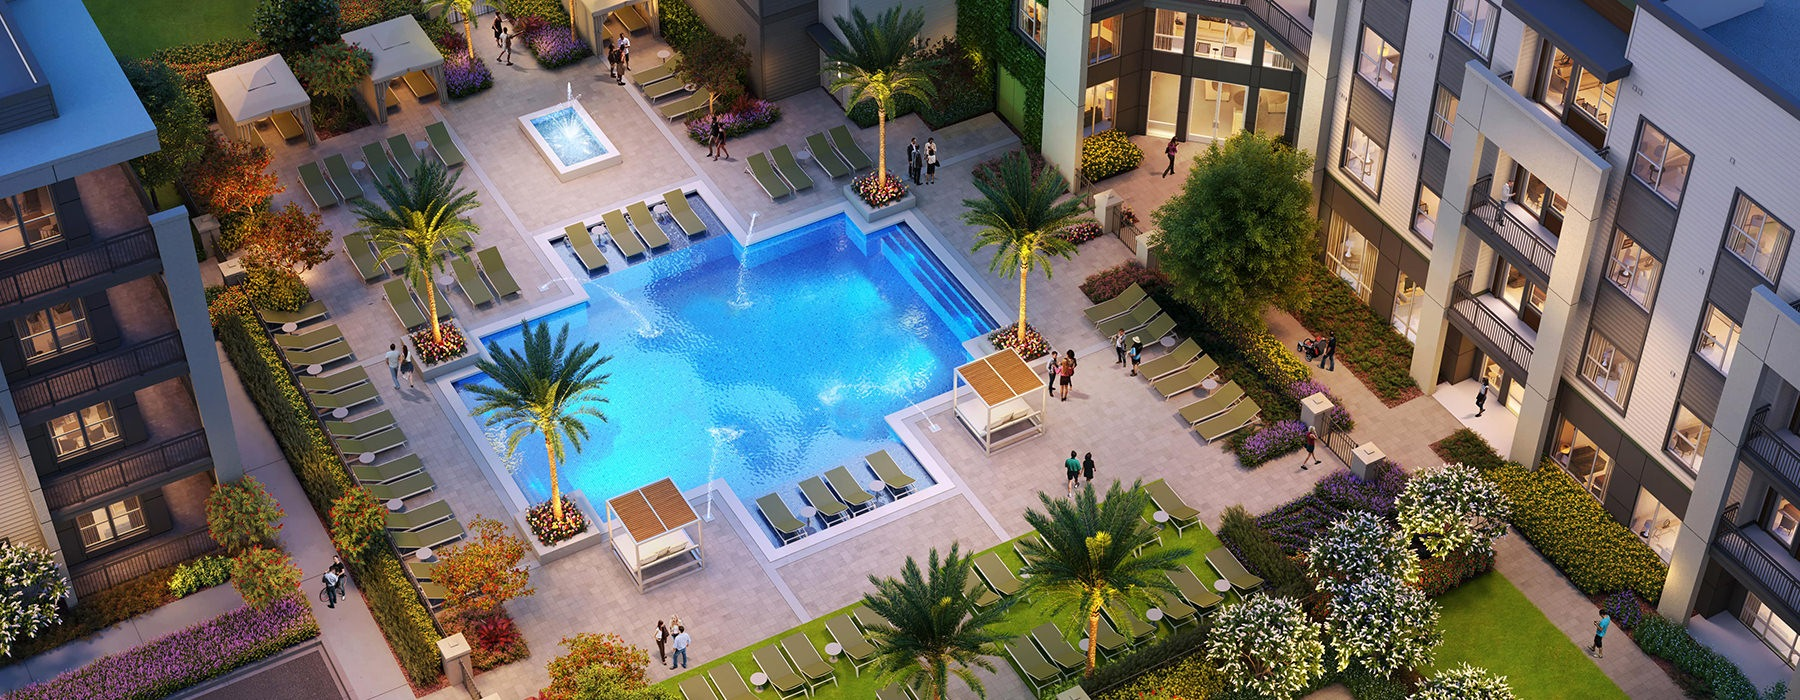 Saltwater Pool With Ample Seating At Legacy Universal Apartments In Orlando, FL